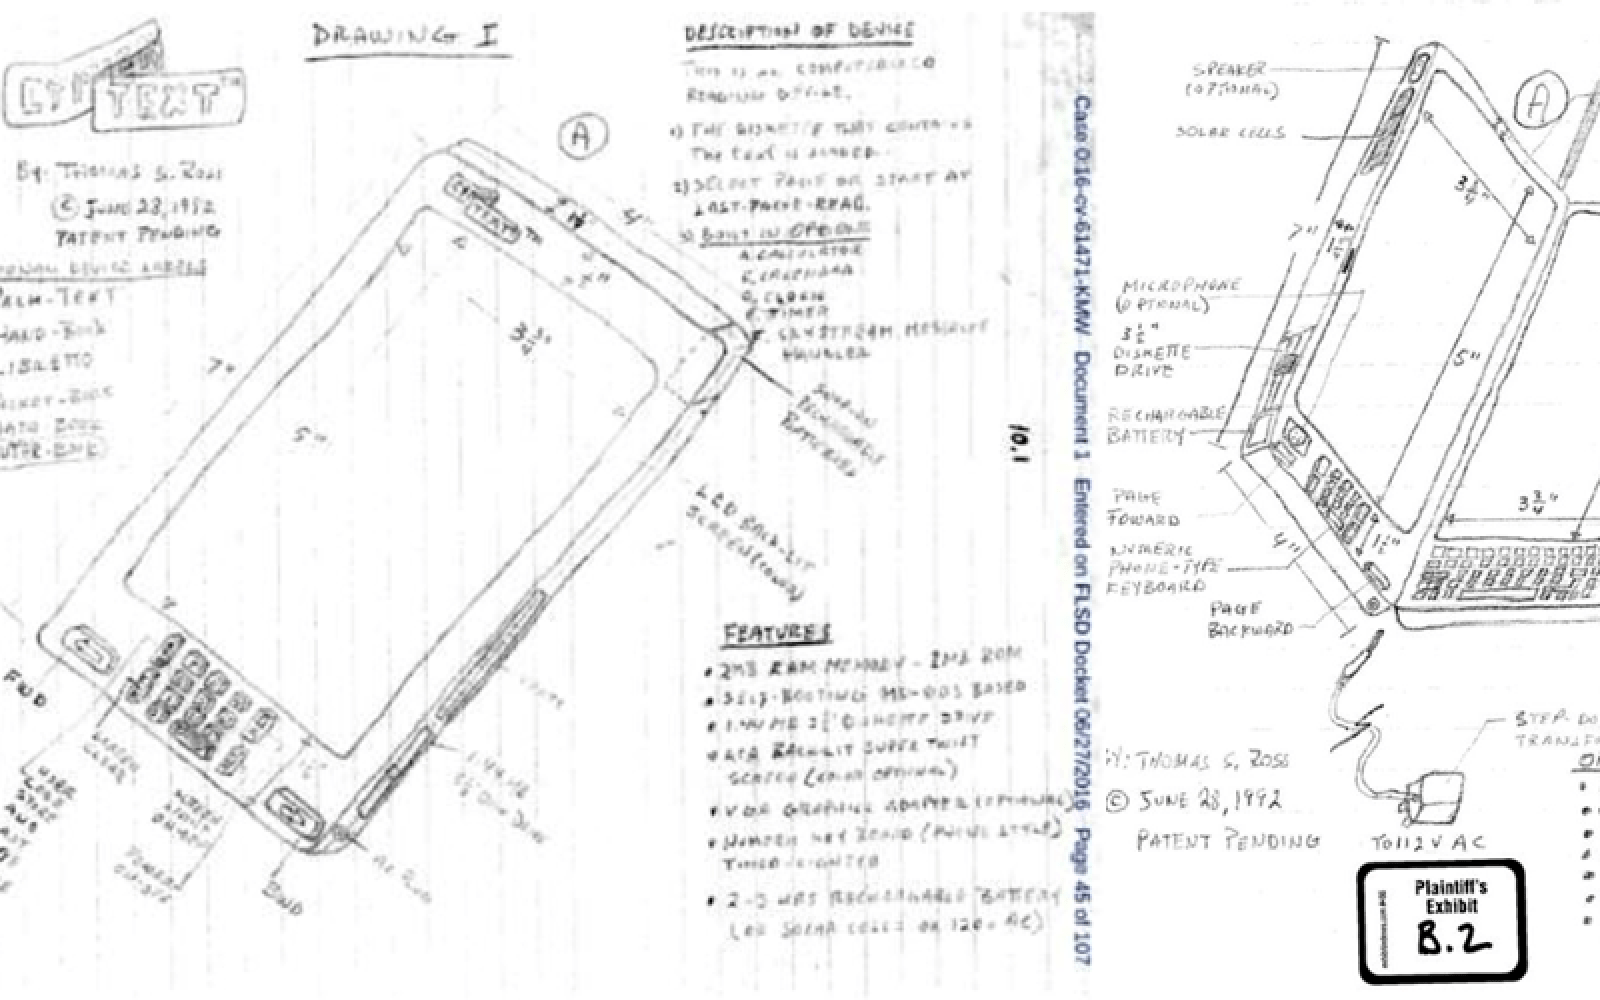 The craziest patent claim yet: $10B for child-like 'iPhone' sketches from 1992